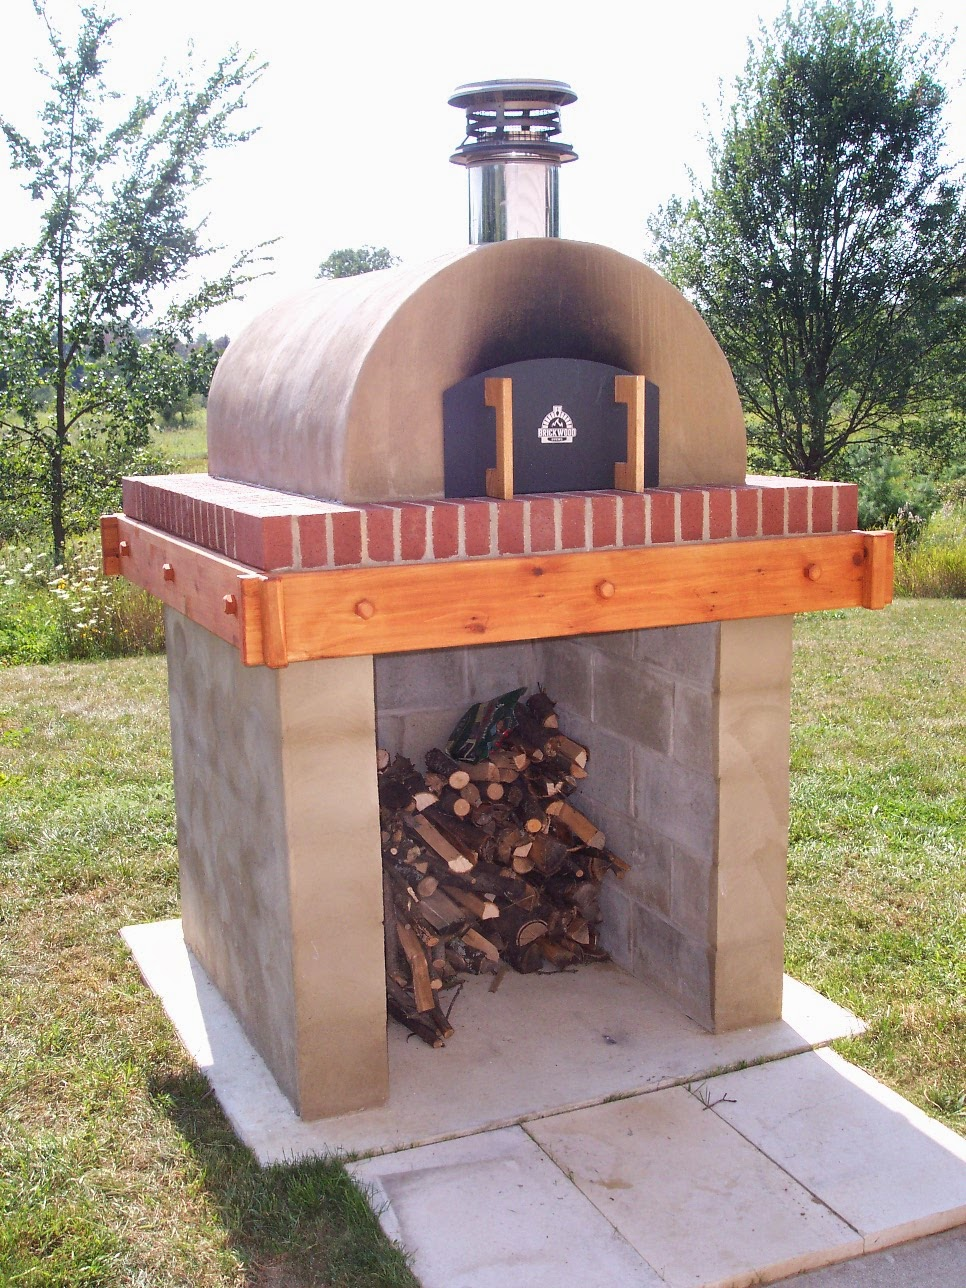 kovalu0027s cortile barile wood fired pizza oven in michigan